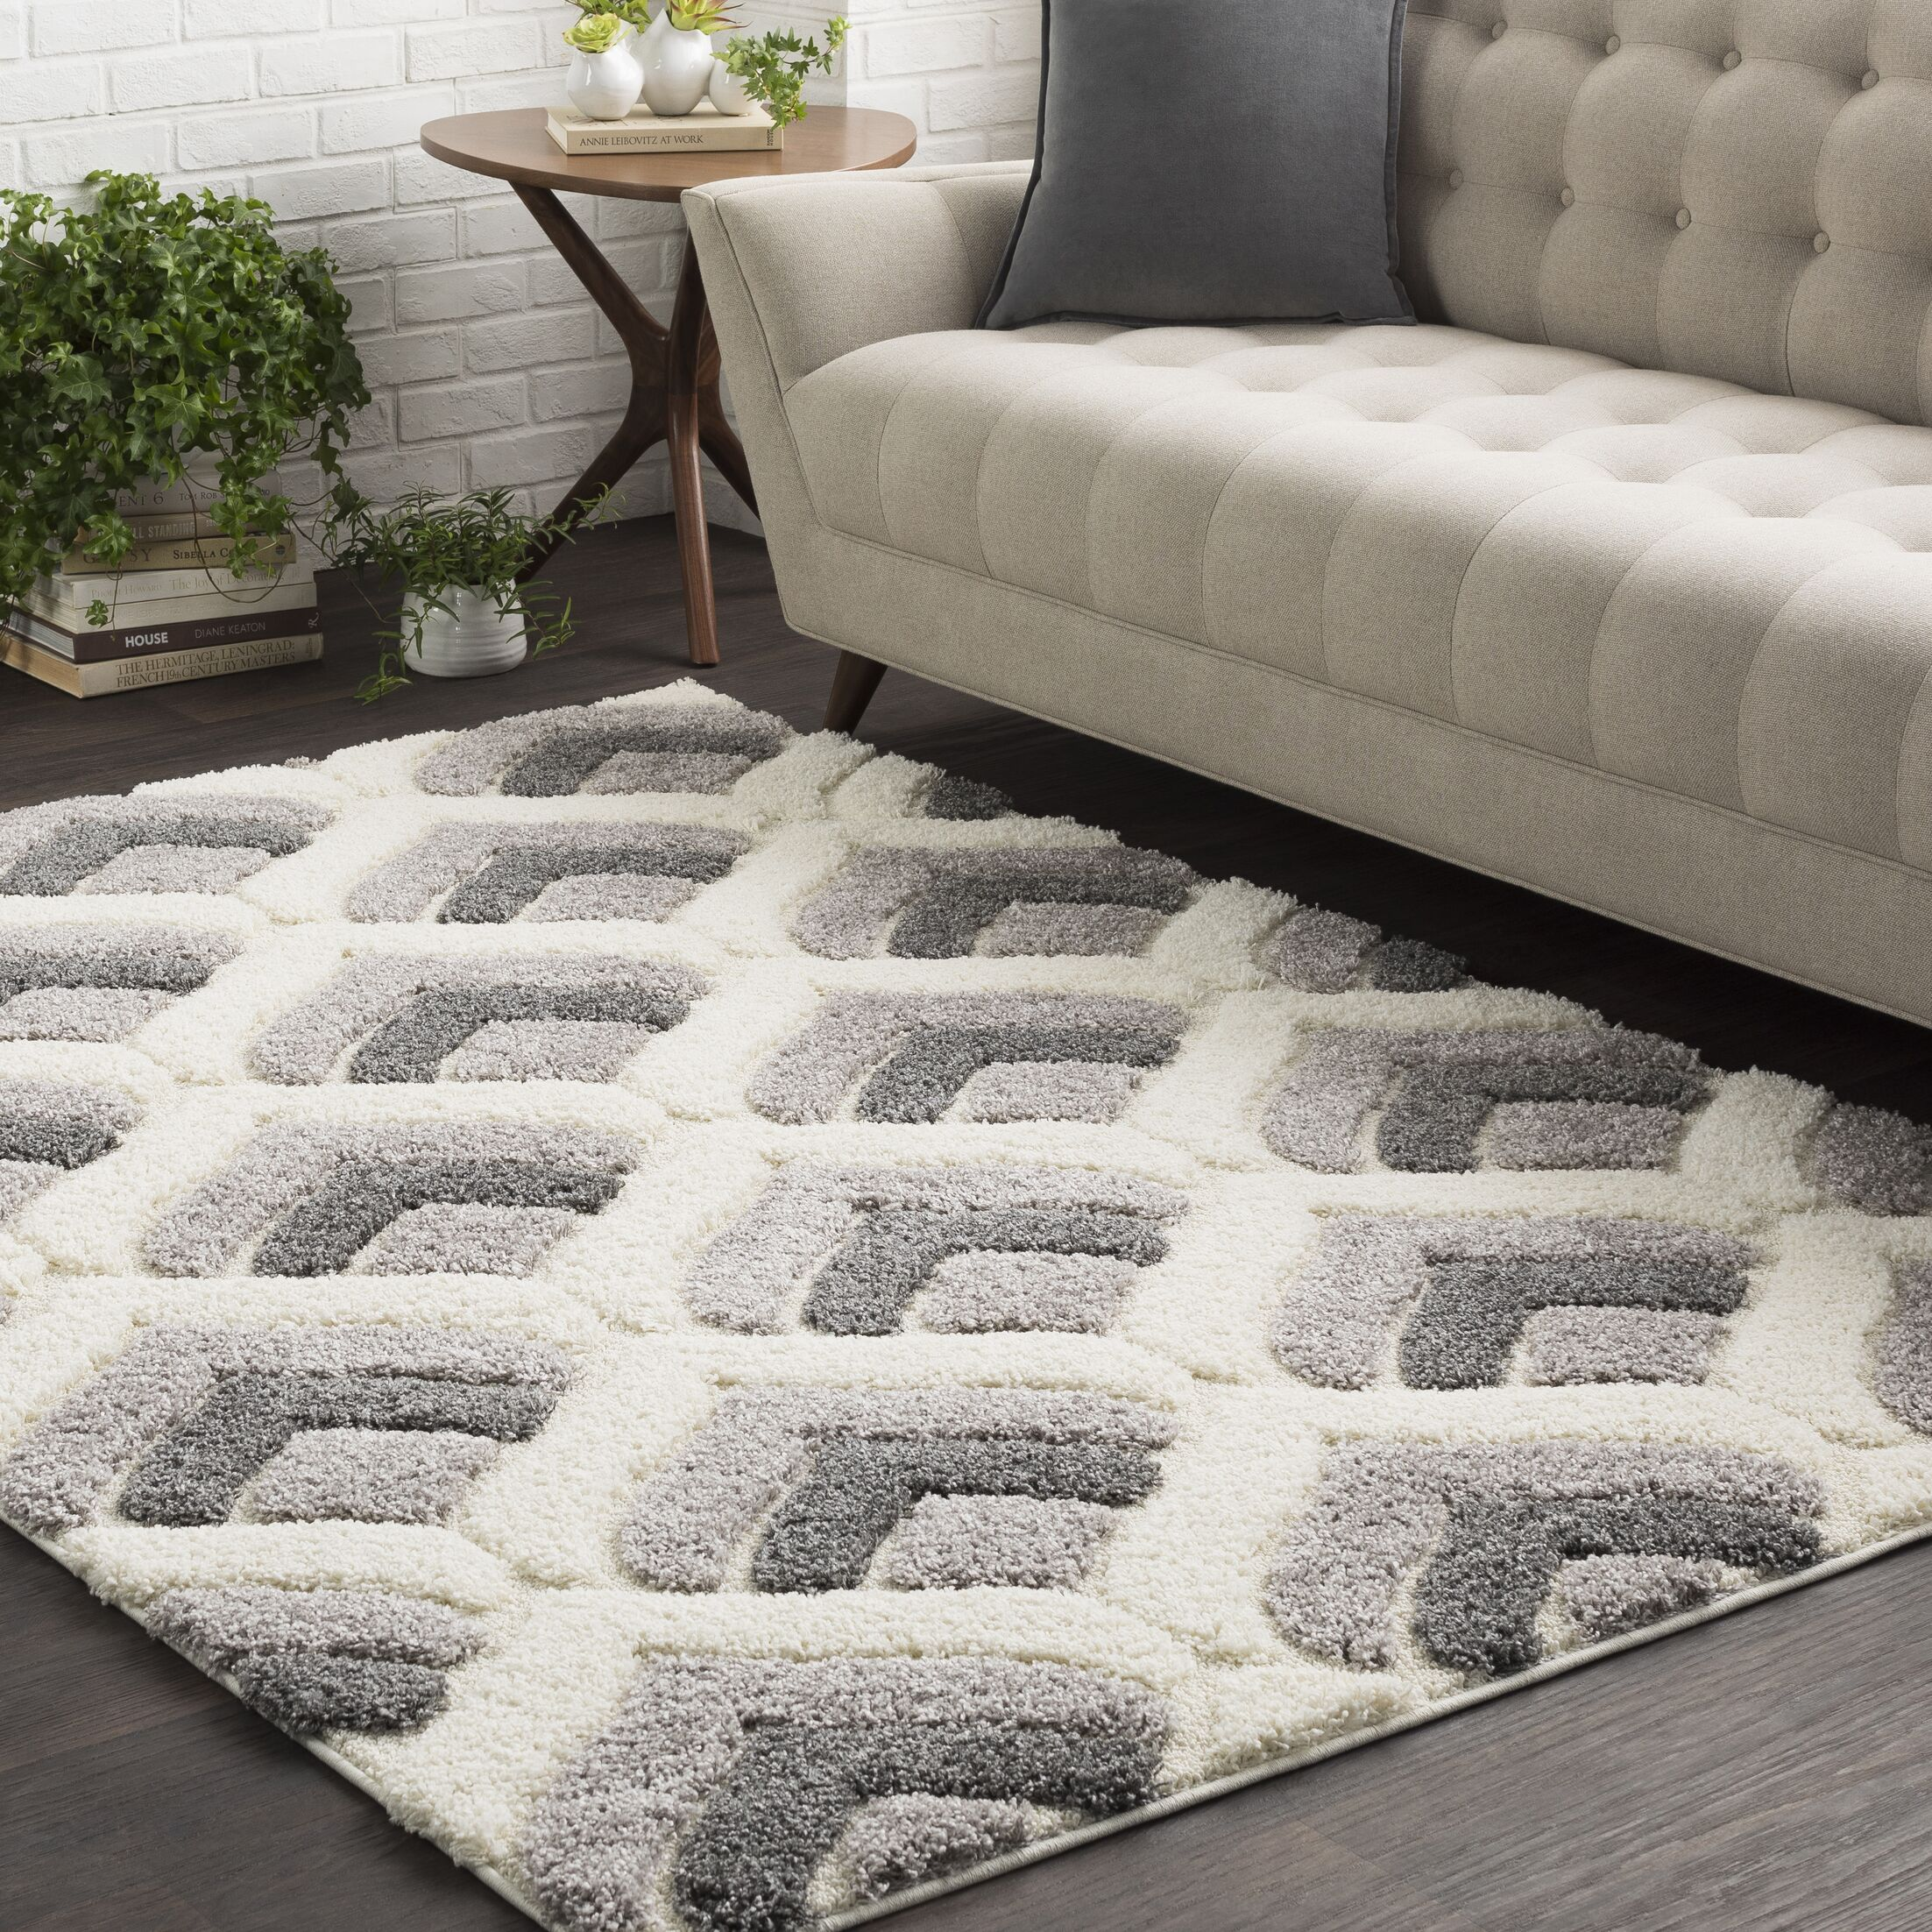 Quincy Soft Patterned Shag White/Gray Area Rug Rug Size: Rectangle 7'10